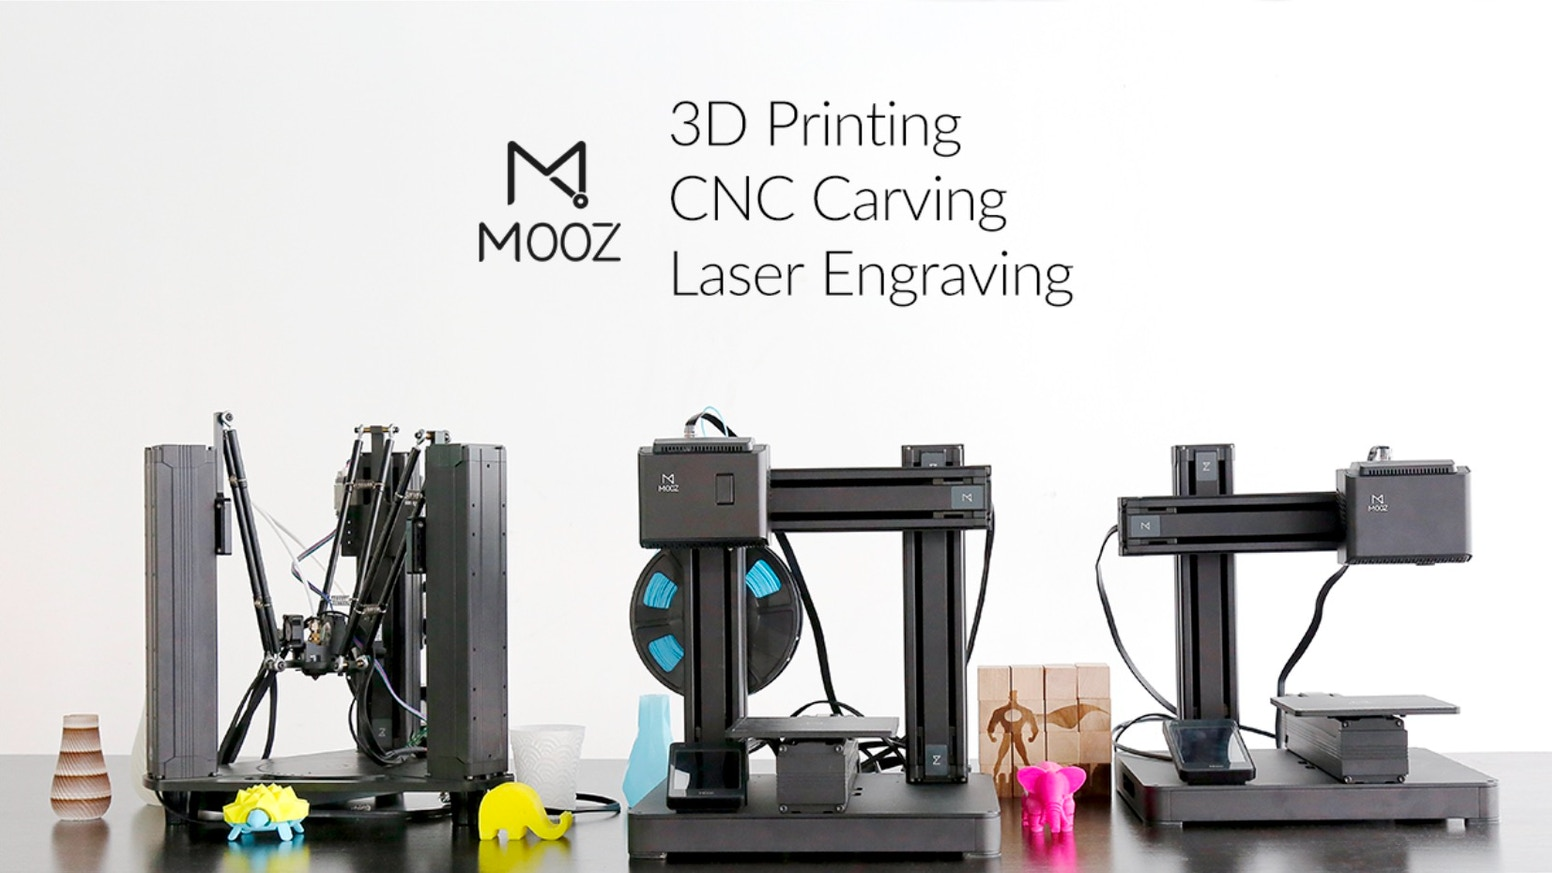 Offers CNC Carving, Laser Engraving & 3D Printing In One Design. The new standard in accuracy and precision.